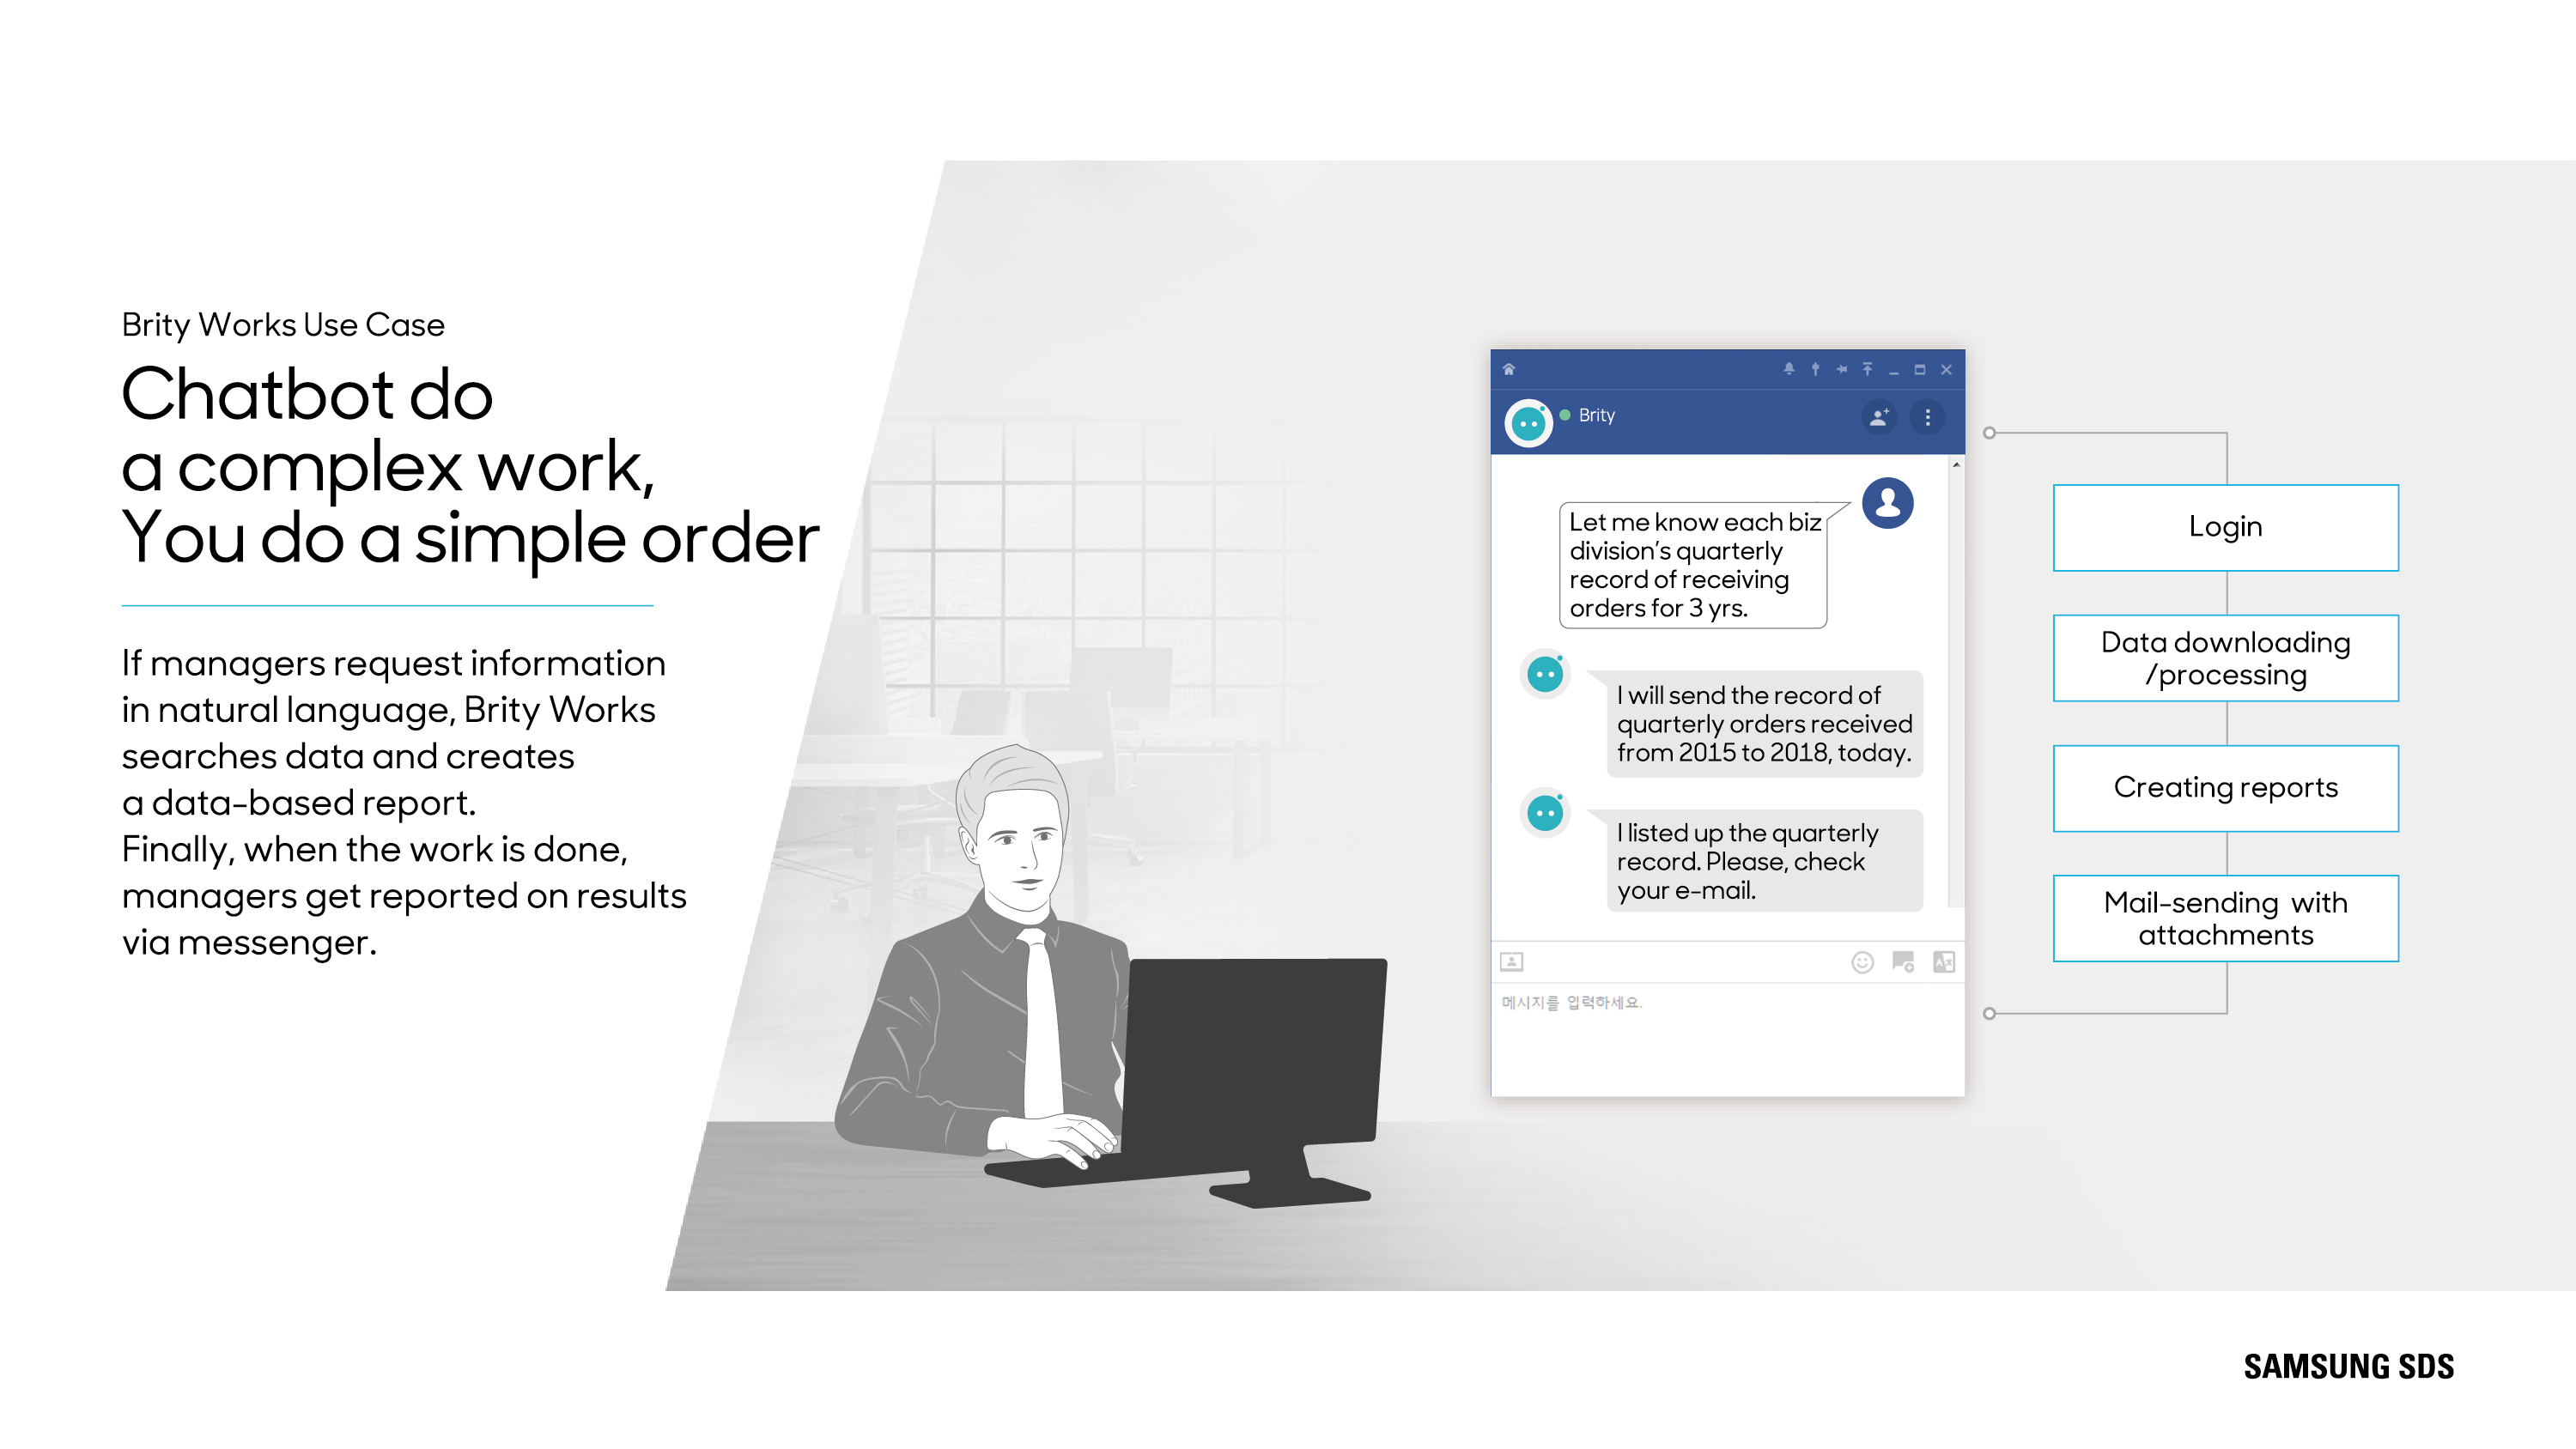 Chatbot do a complex work, You do a simple order  If managers request information in natural language, Brity Works searches data and creates a data-based report. Finally, when the work is done, managers get reported on results via messenger.  B2B, AI, Chatbot, RPA